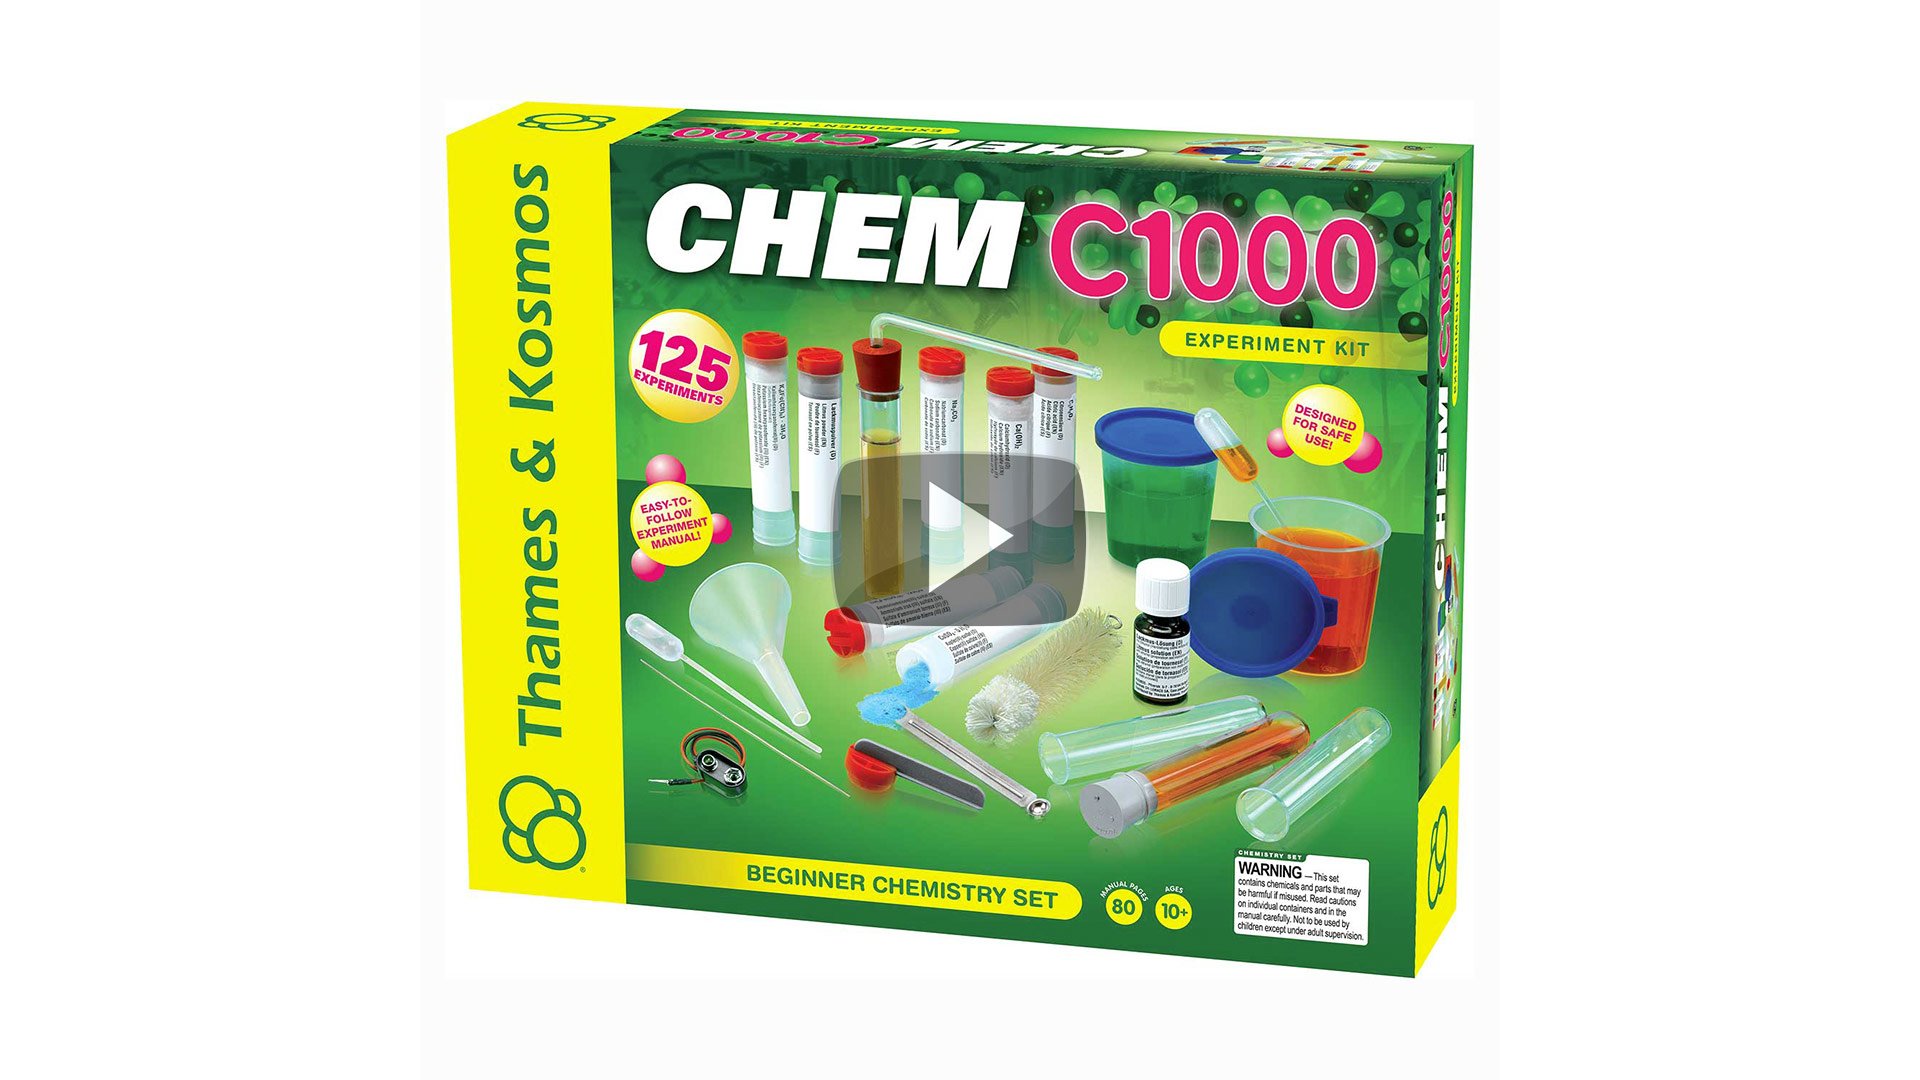 Chemistry Kit- CHEM C1000